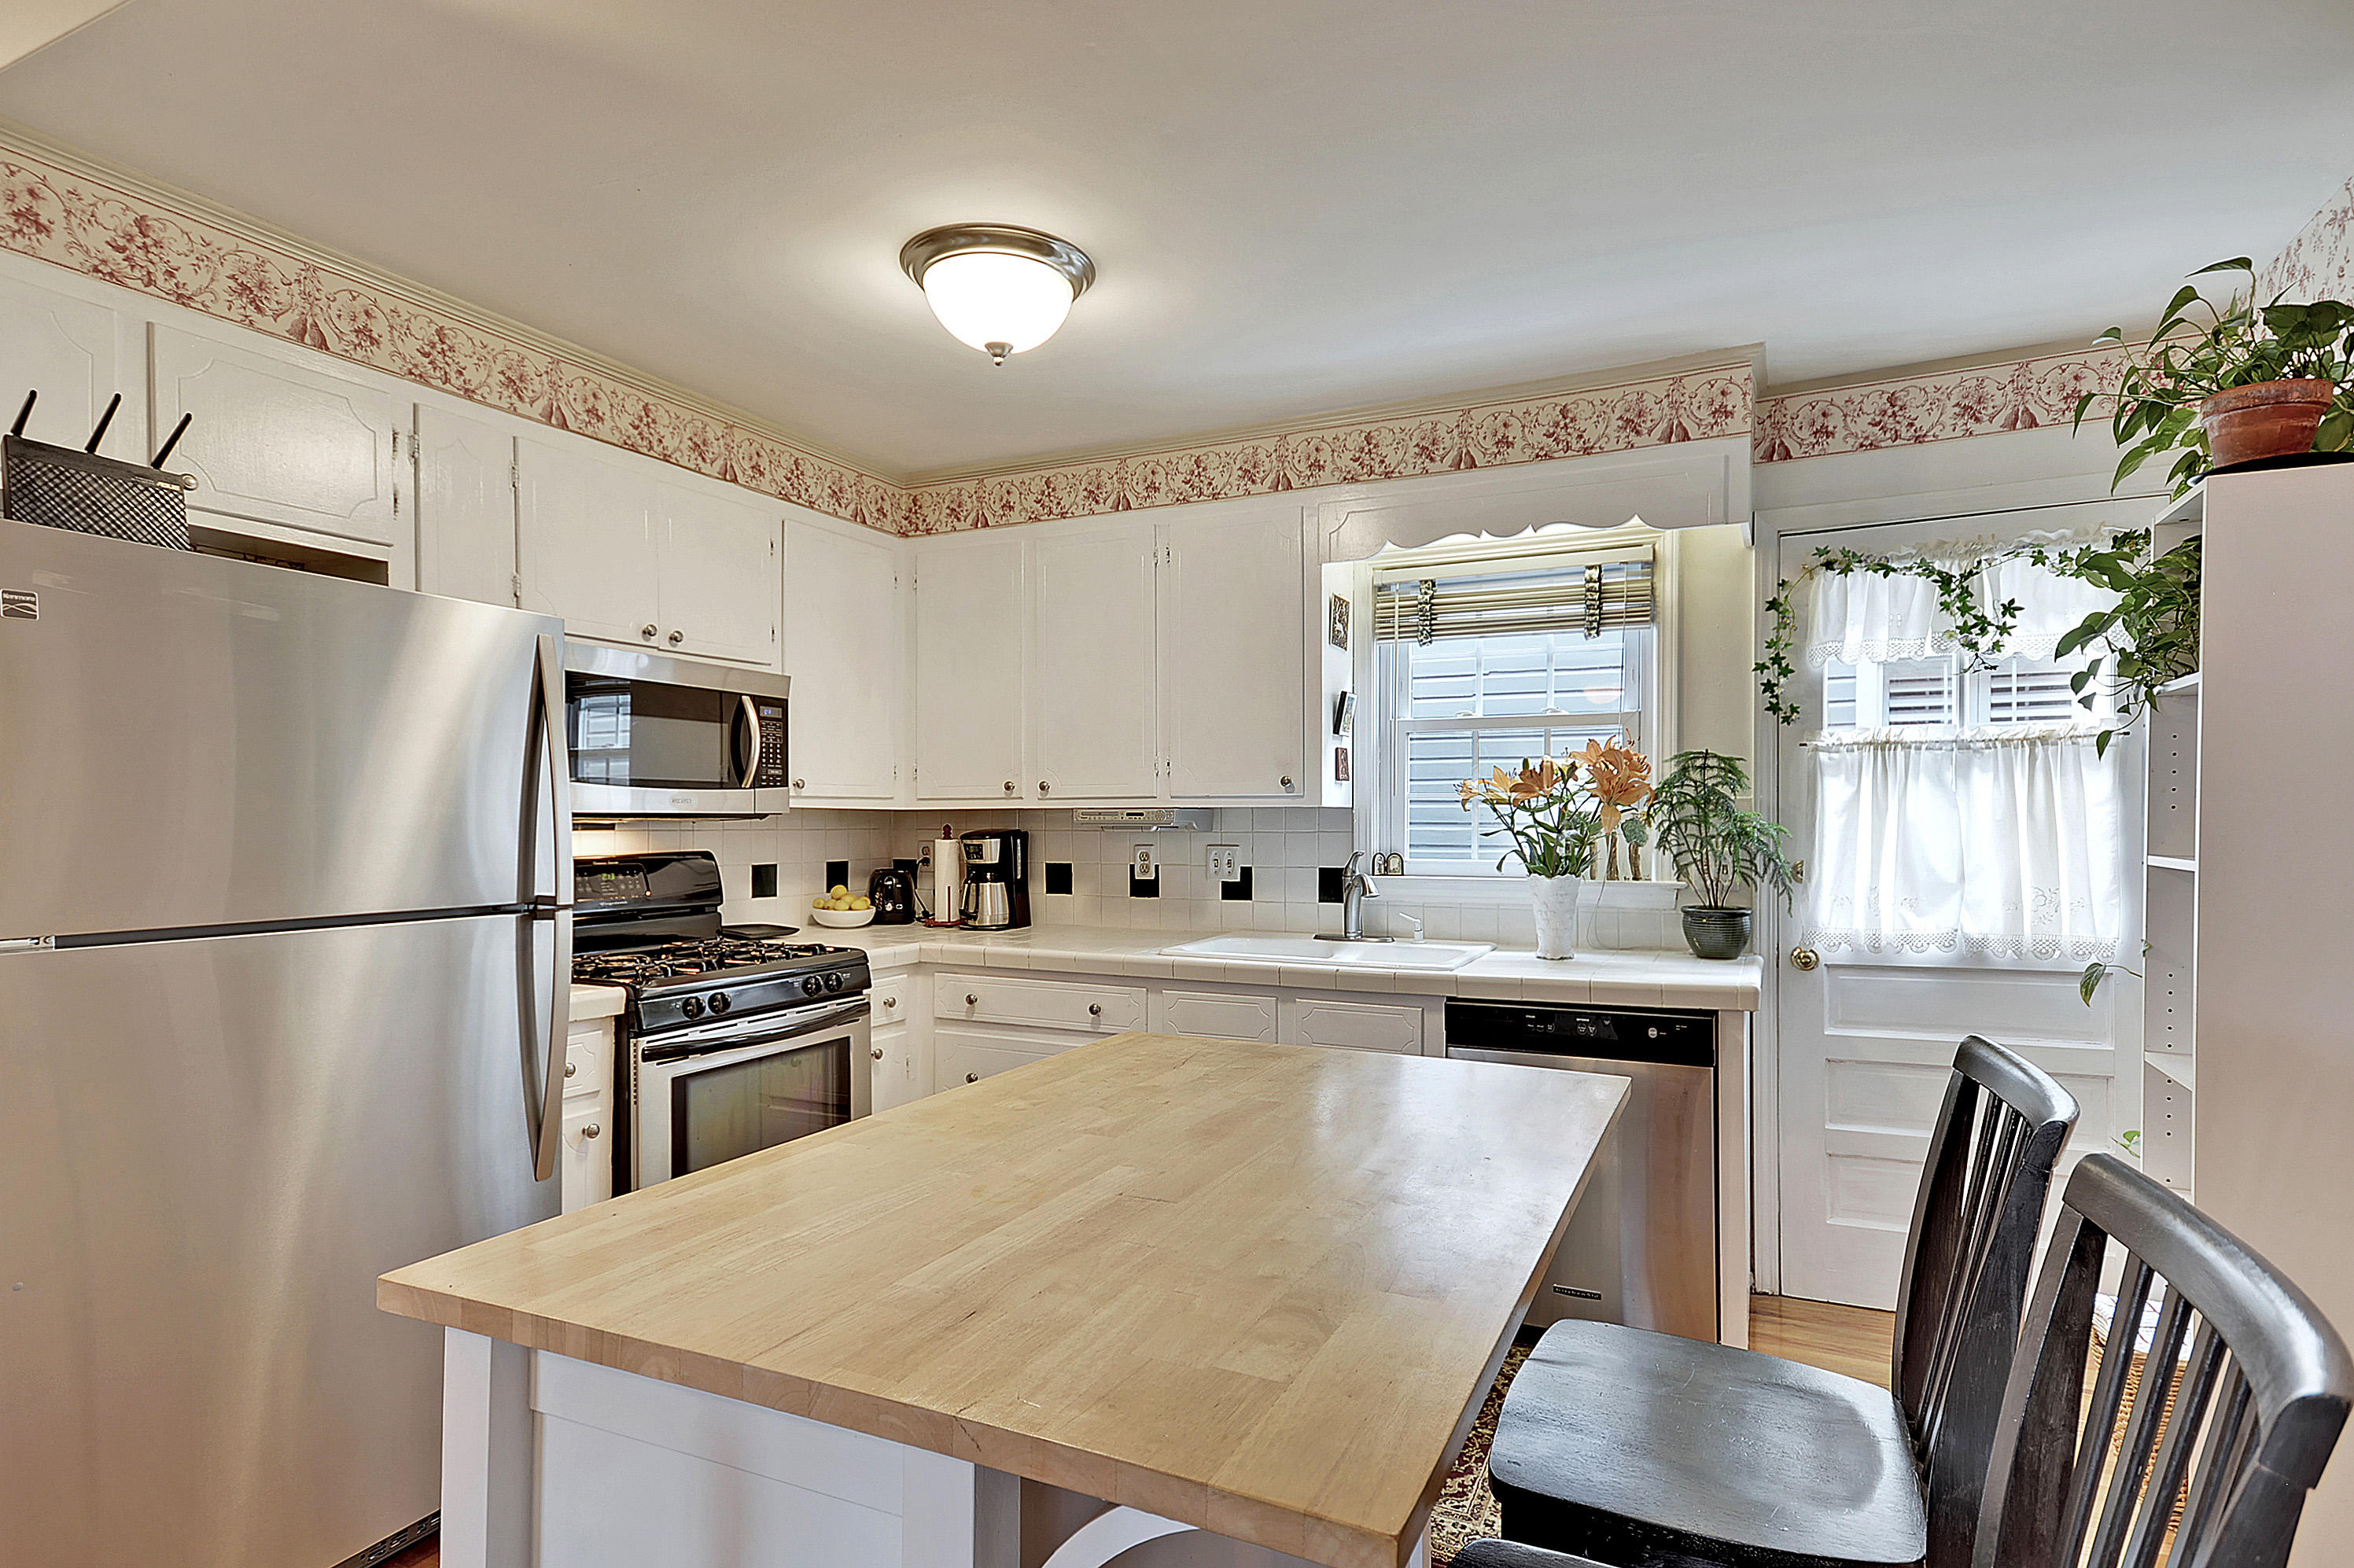 South of Broad Homes For Sale - 0 Rutledge, Charleston, SC - 35